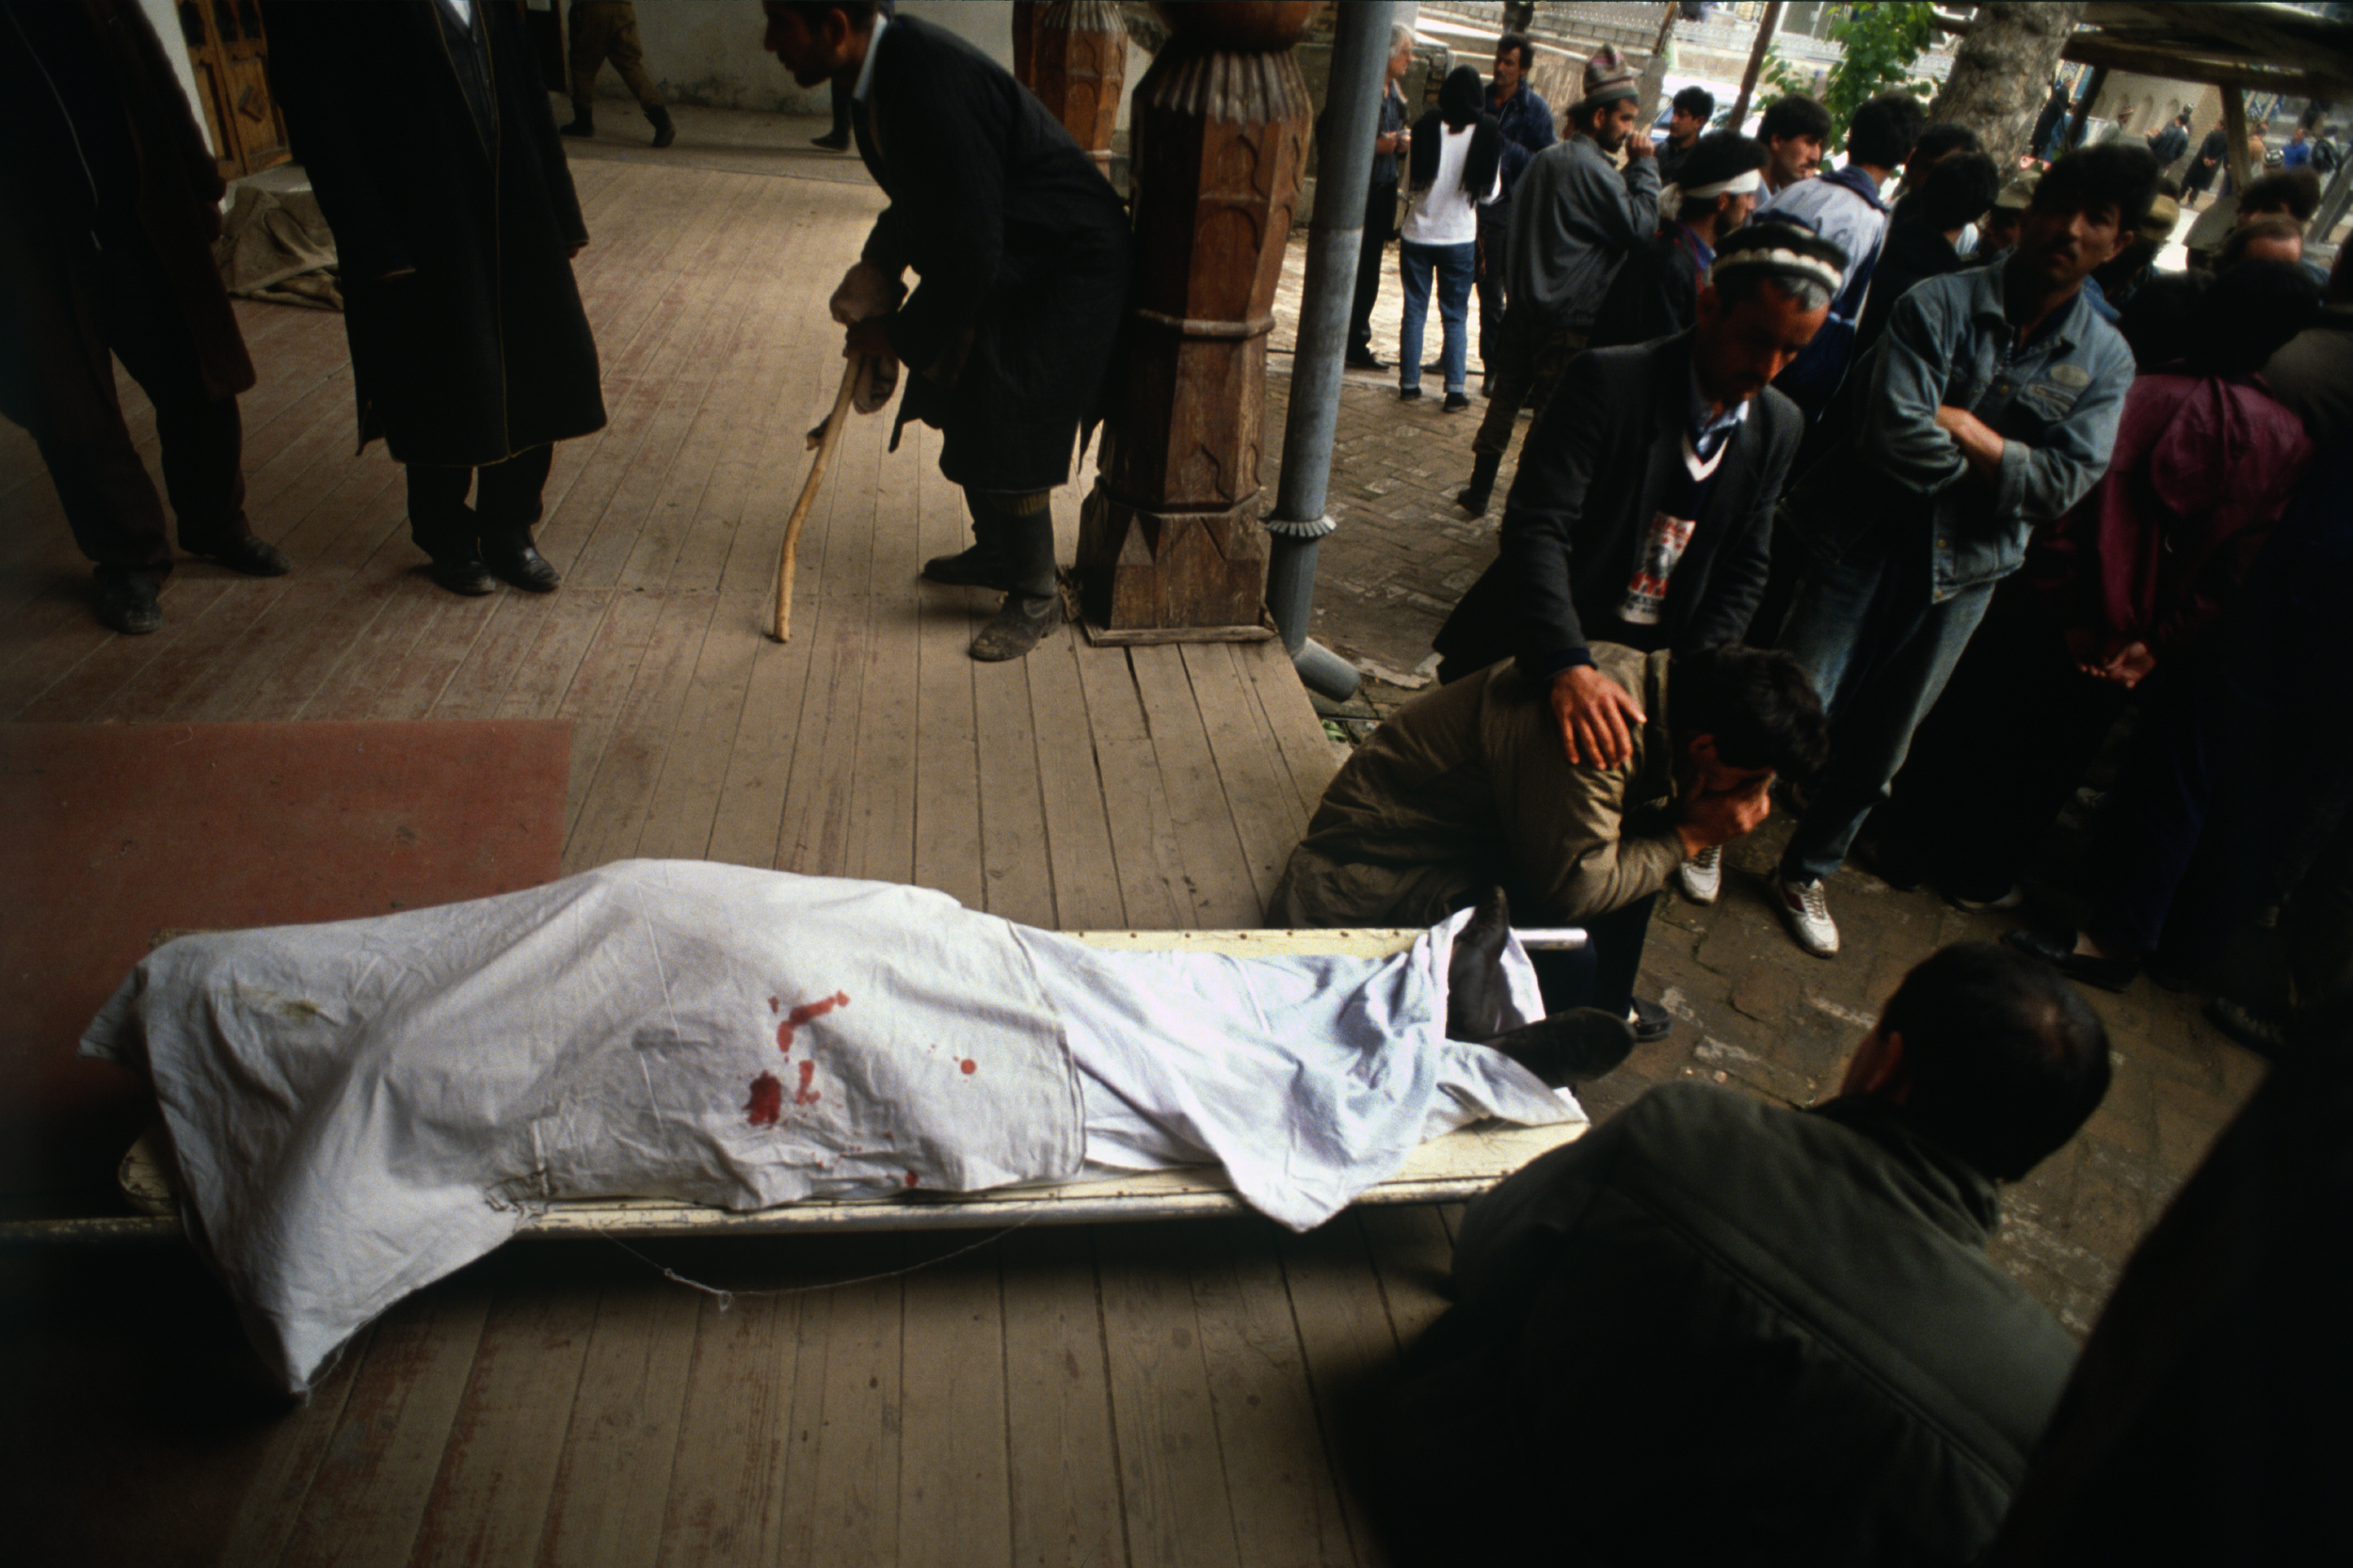 Islamic Renaissance party member shot dead, (headshot) by a government sniper in Dushanbe,Tajikistan. The Islamic Renaissance Party were fighting to overthrow the Soviet backed government in power. Tajikistan,1992